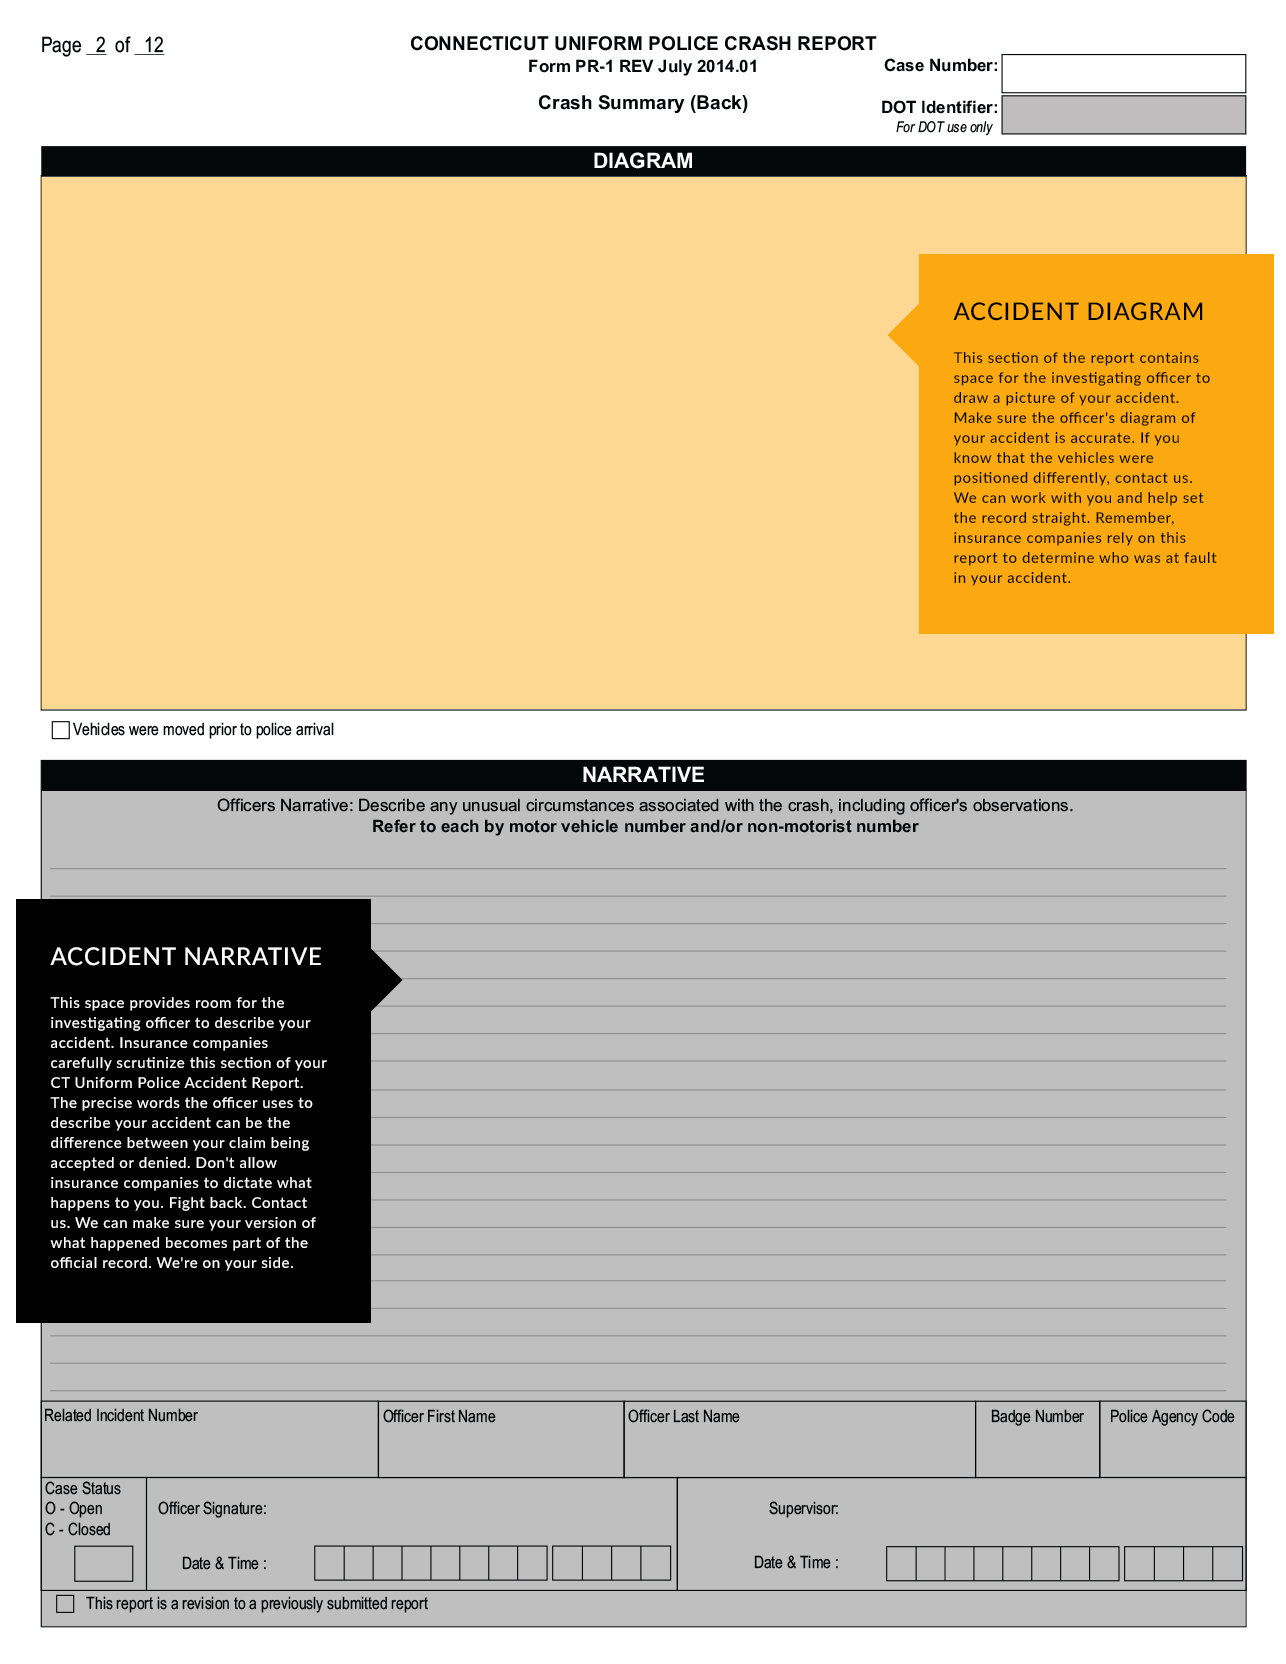 CT Accident Report instructions